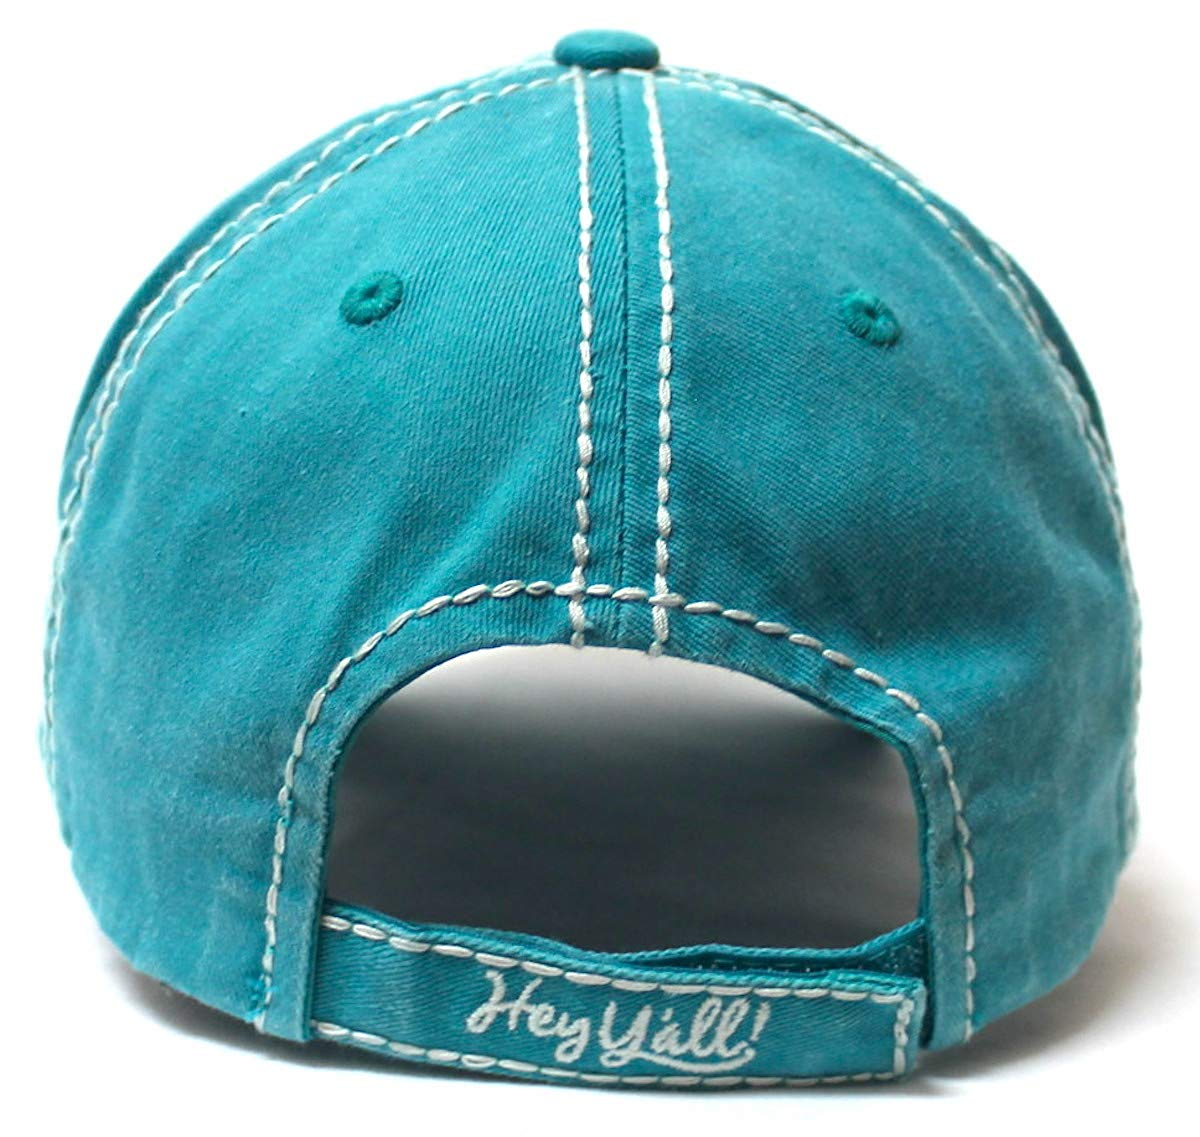 Women's Summer Ballcap Hey Y'all! Wildflower Embroidery Hat, Turquoise - Caps 'N Vintage